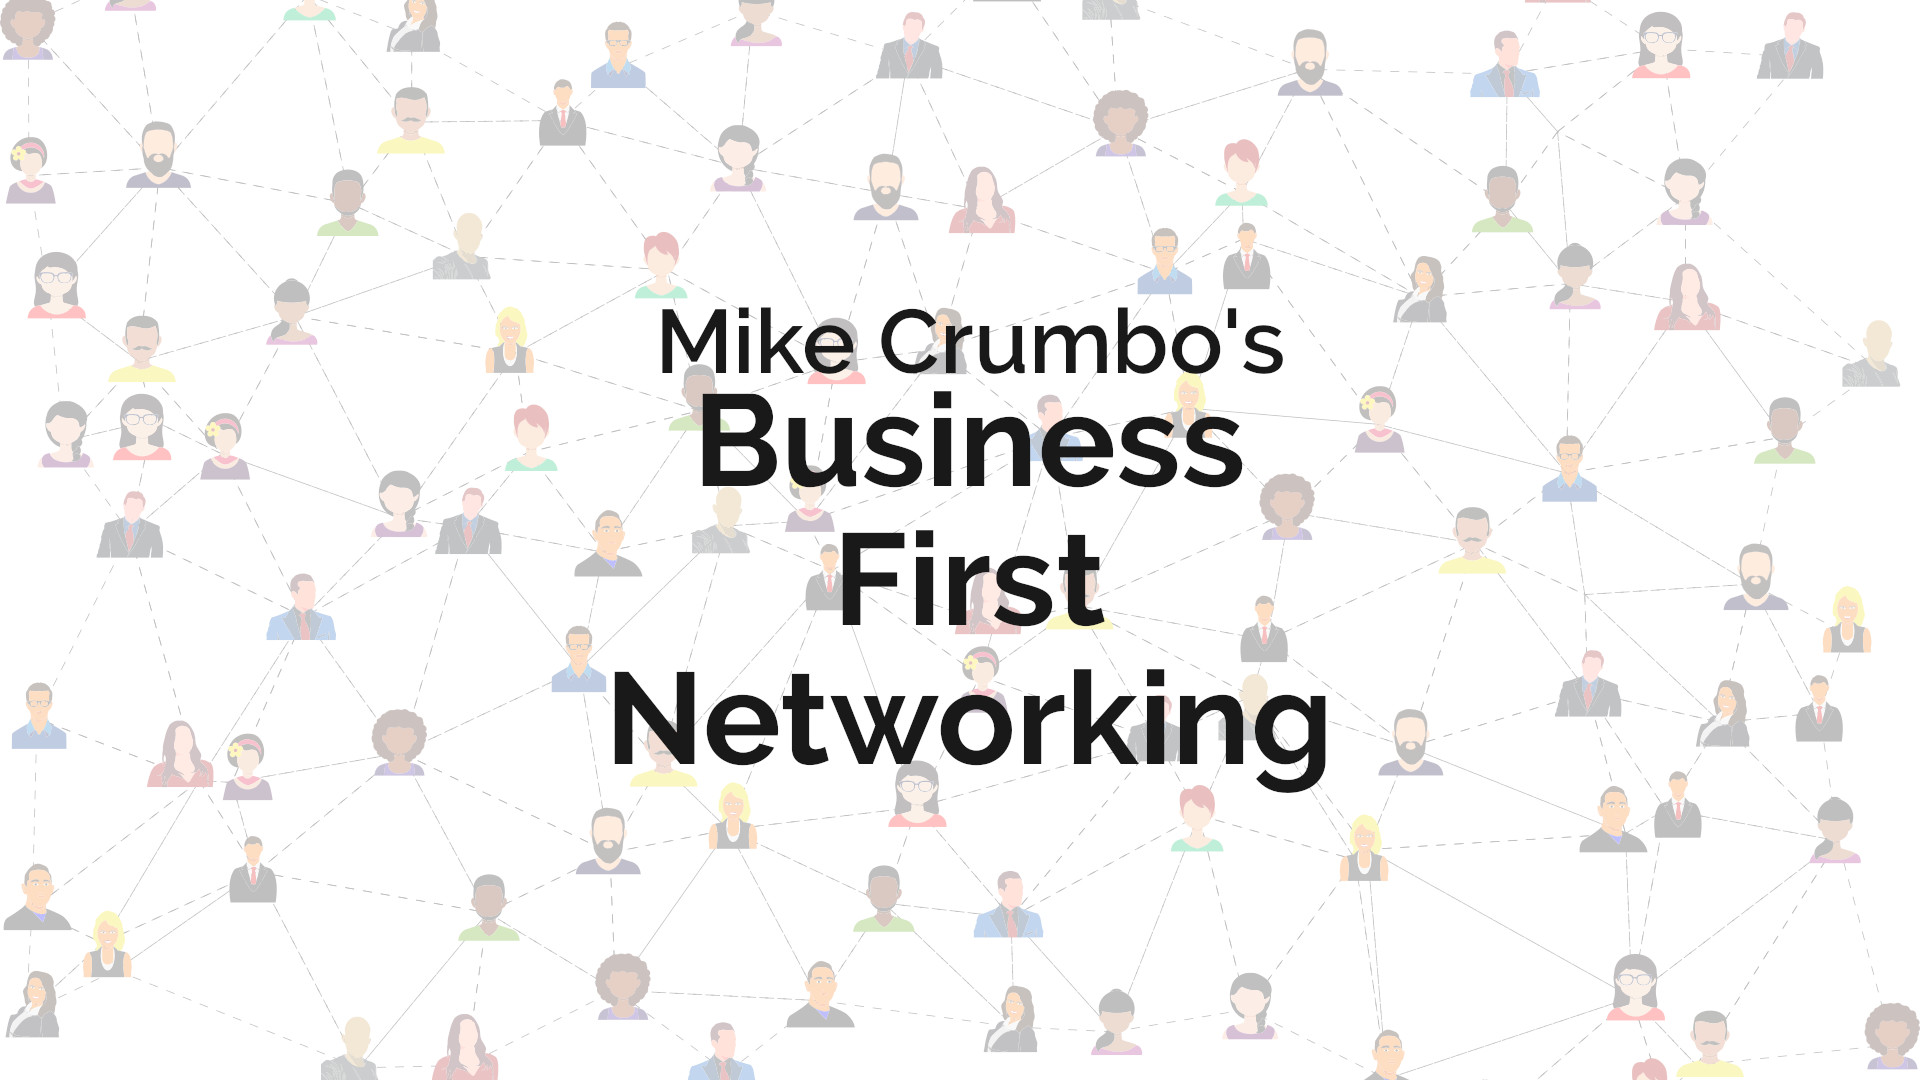 Business First Networking